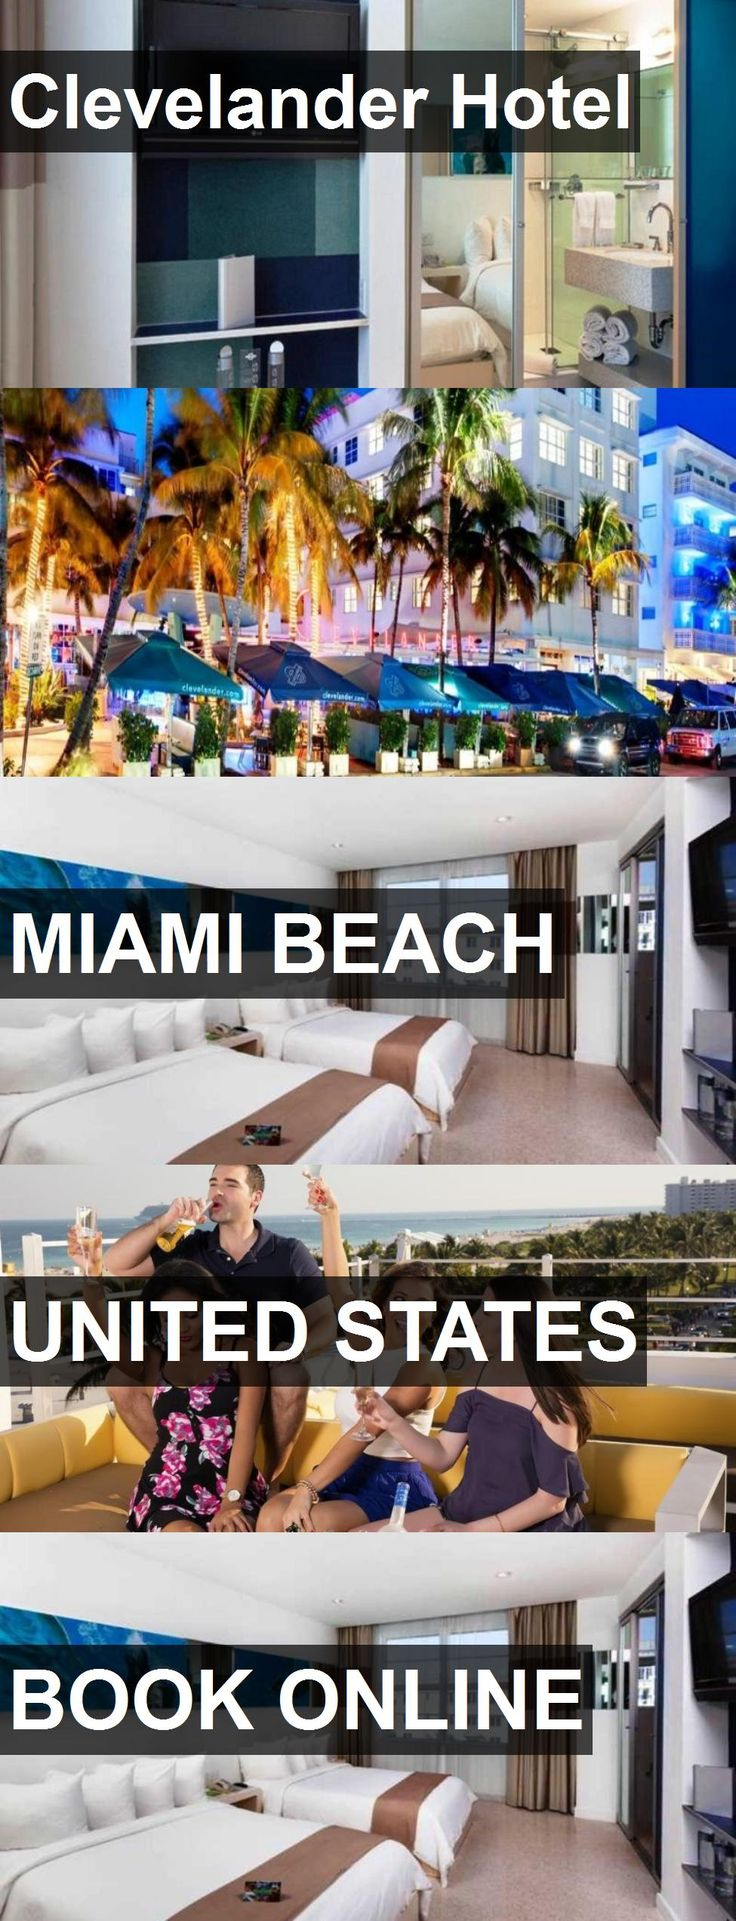 Hotel Clevelander Hotel in Miami Beach, United States. For more information, photos, reviews and best prices please follow the link. #UnitedStates #MiamiBeach #ClevelanderHotel #hotel #travel #vacation